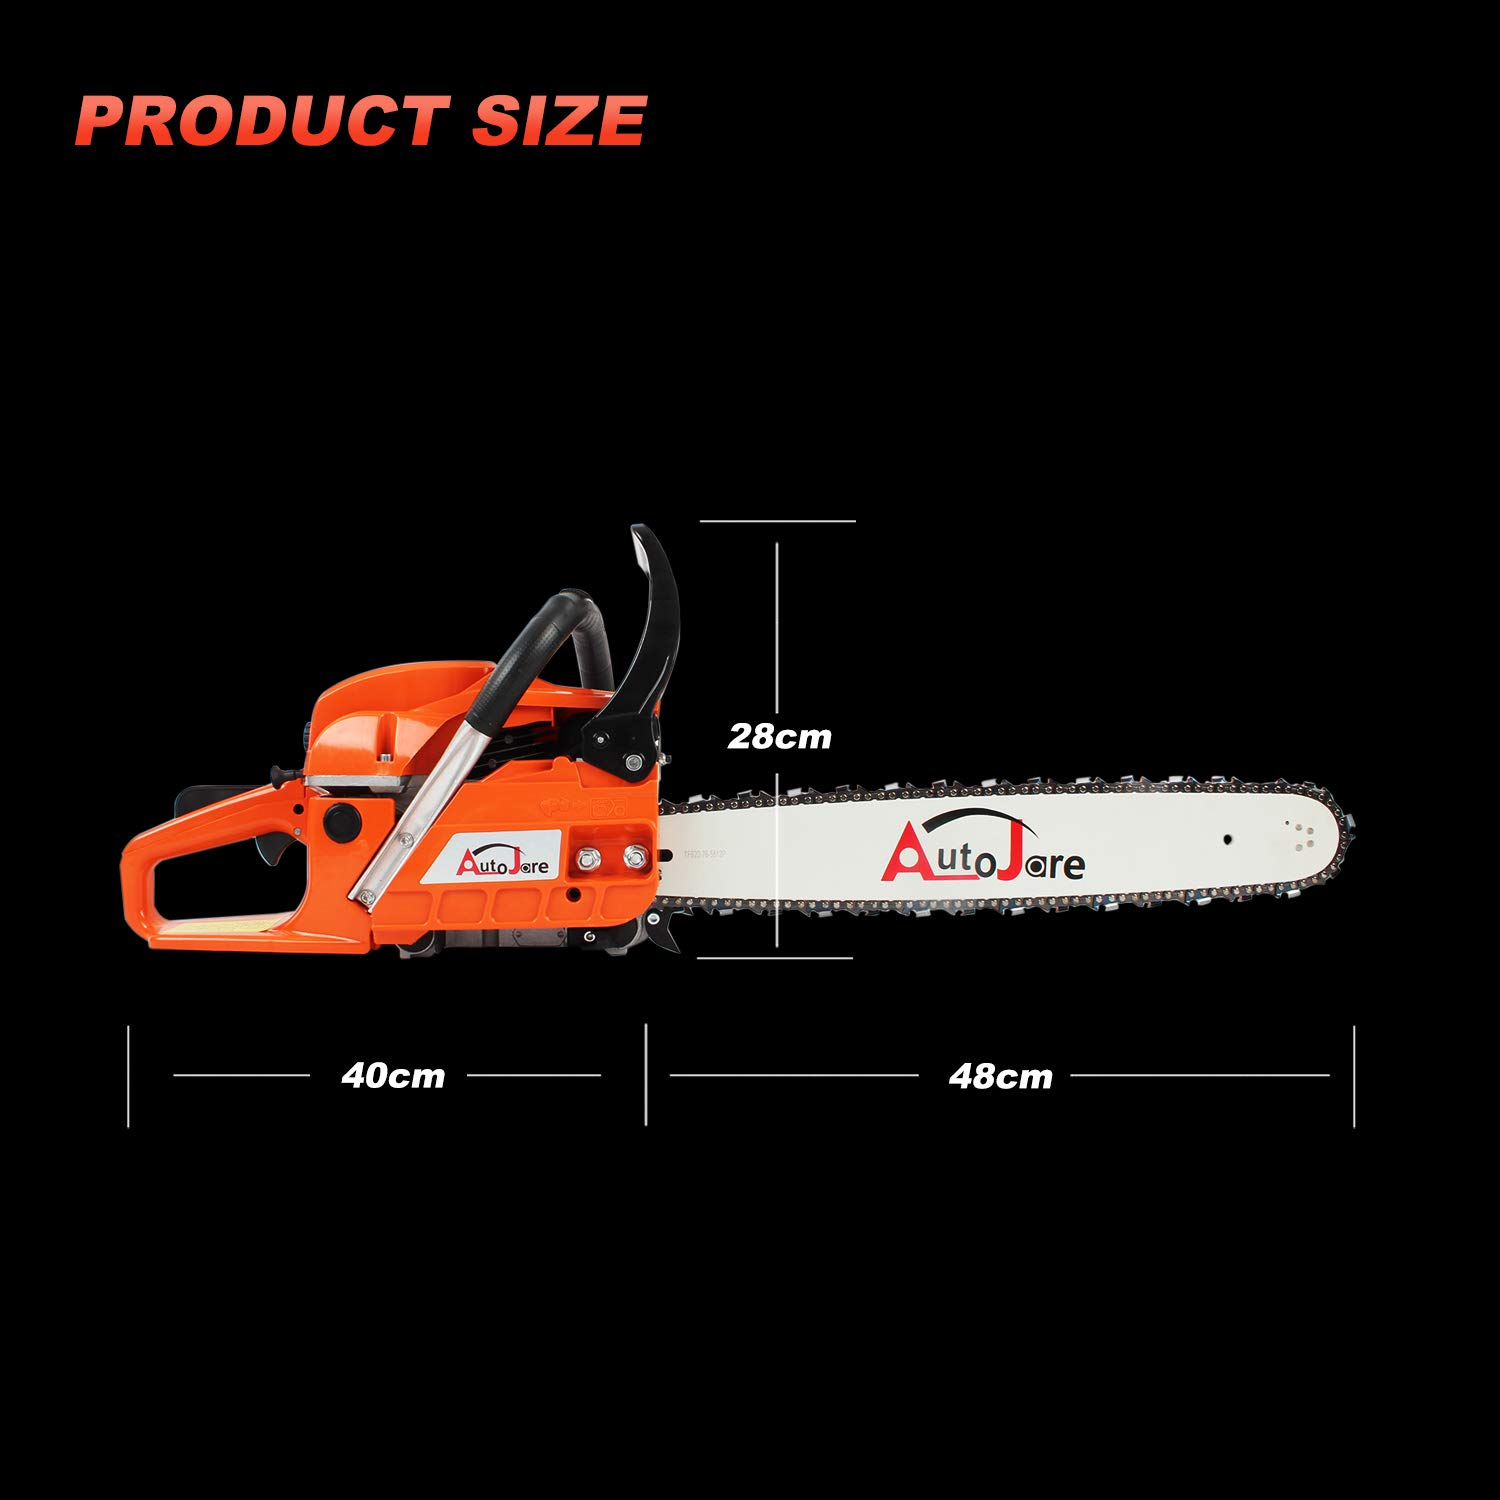 AUTOJARE YJ5202 Chainsaws product image 2